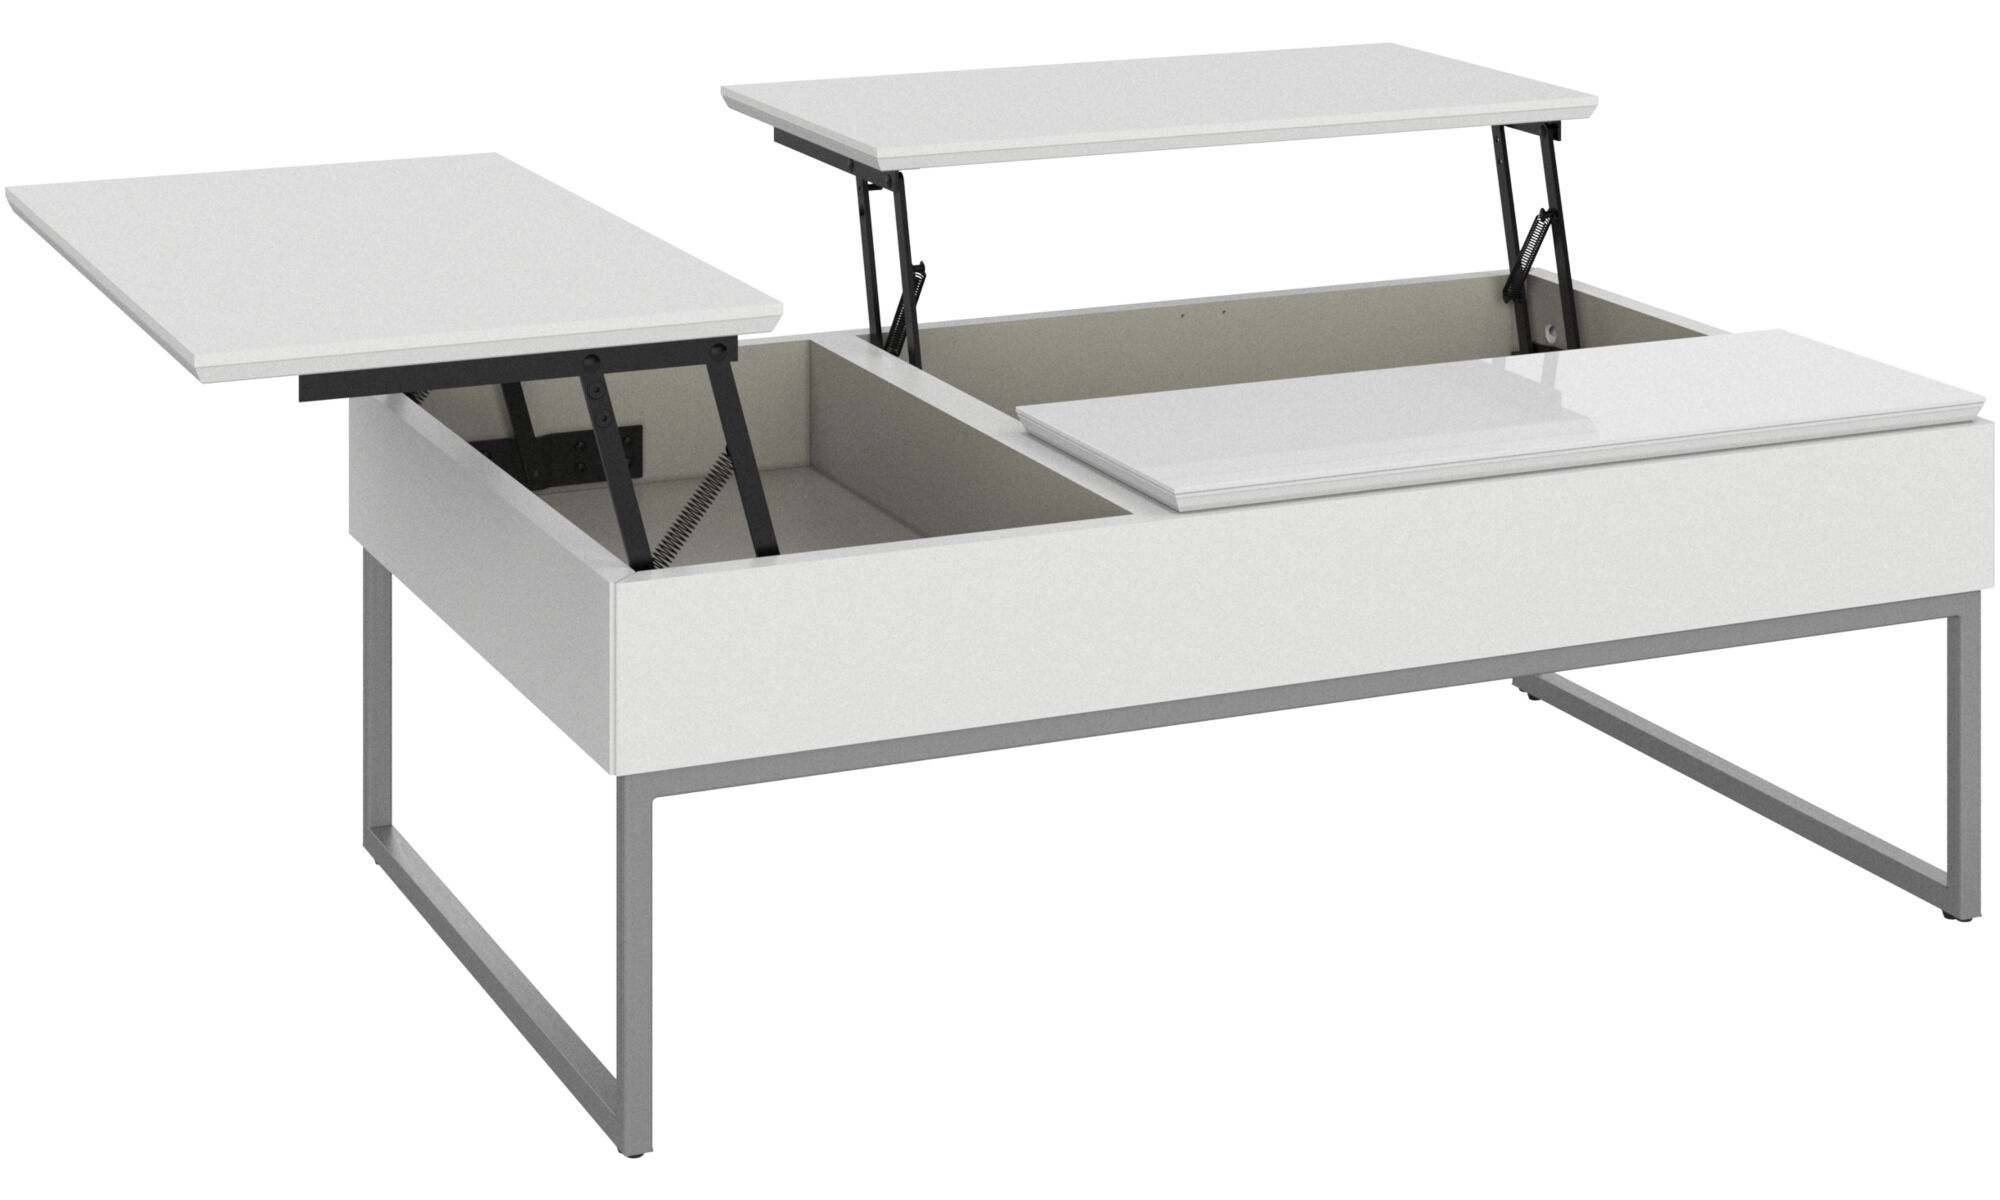 Chiva functional coffee table